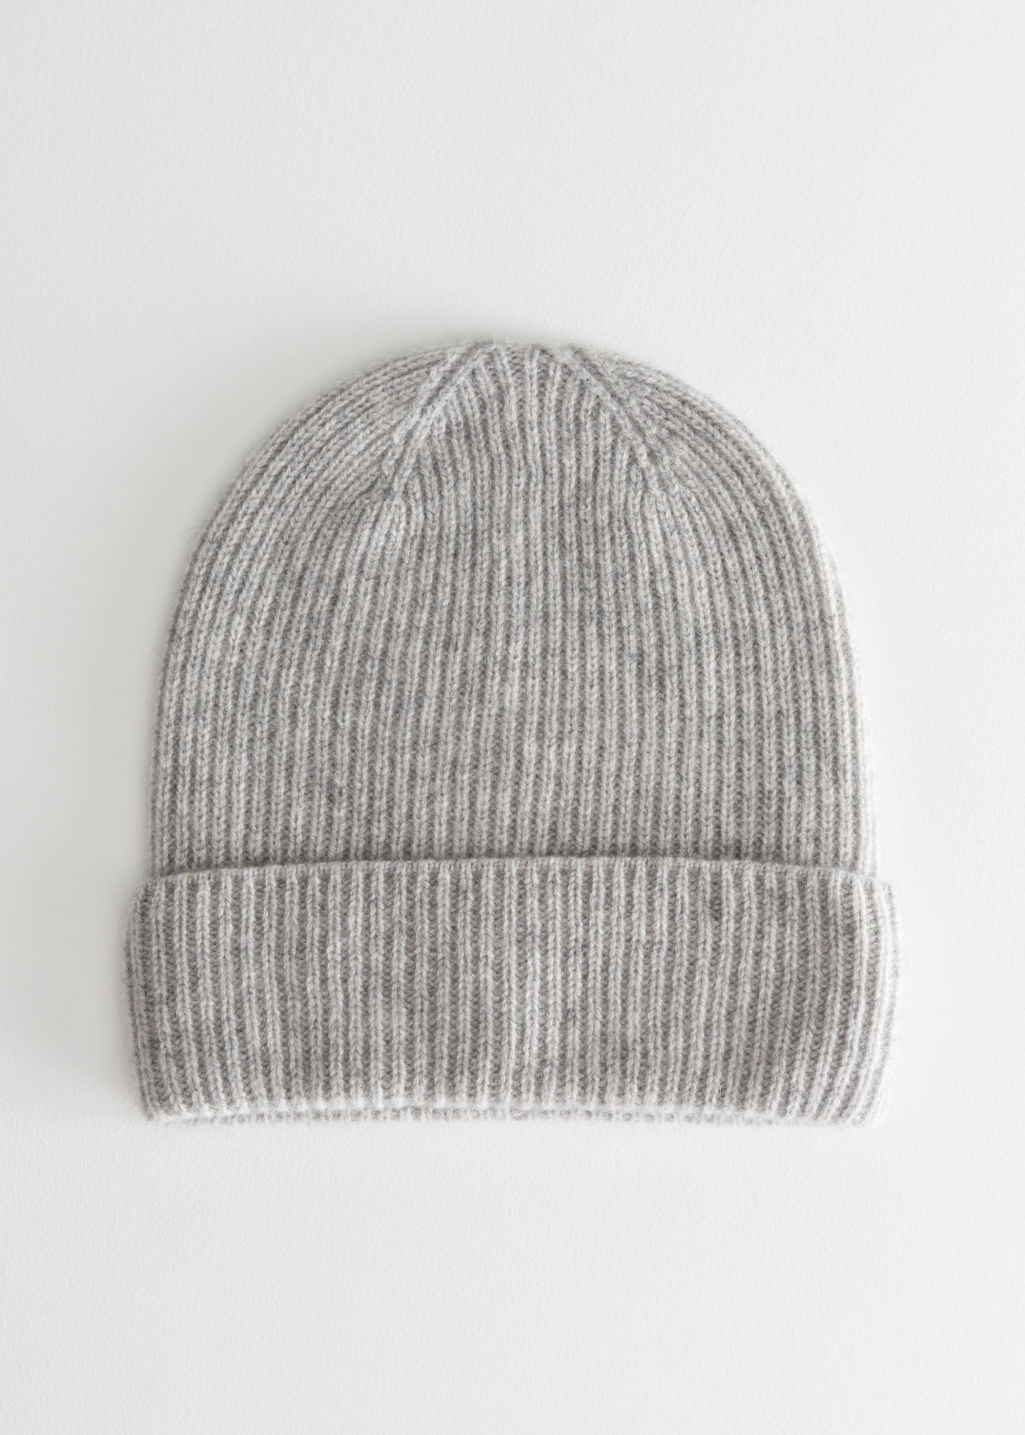 Gray Cashmere Knit Beanie